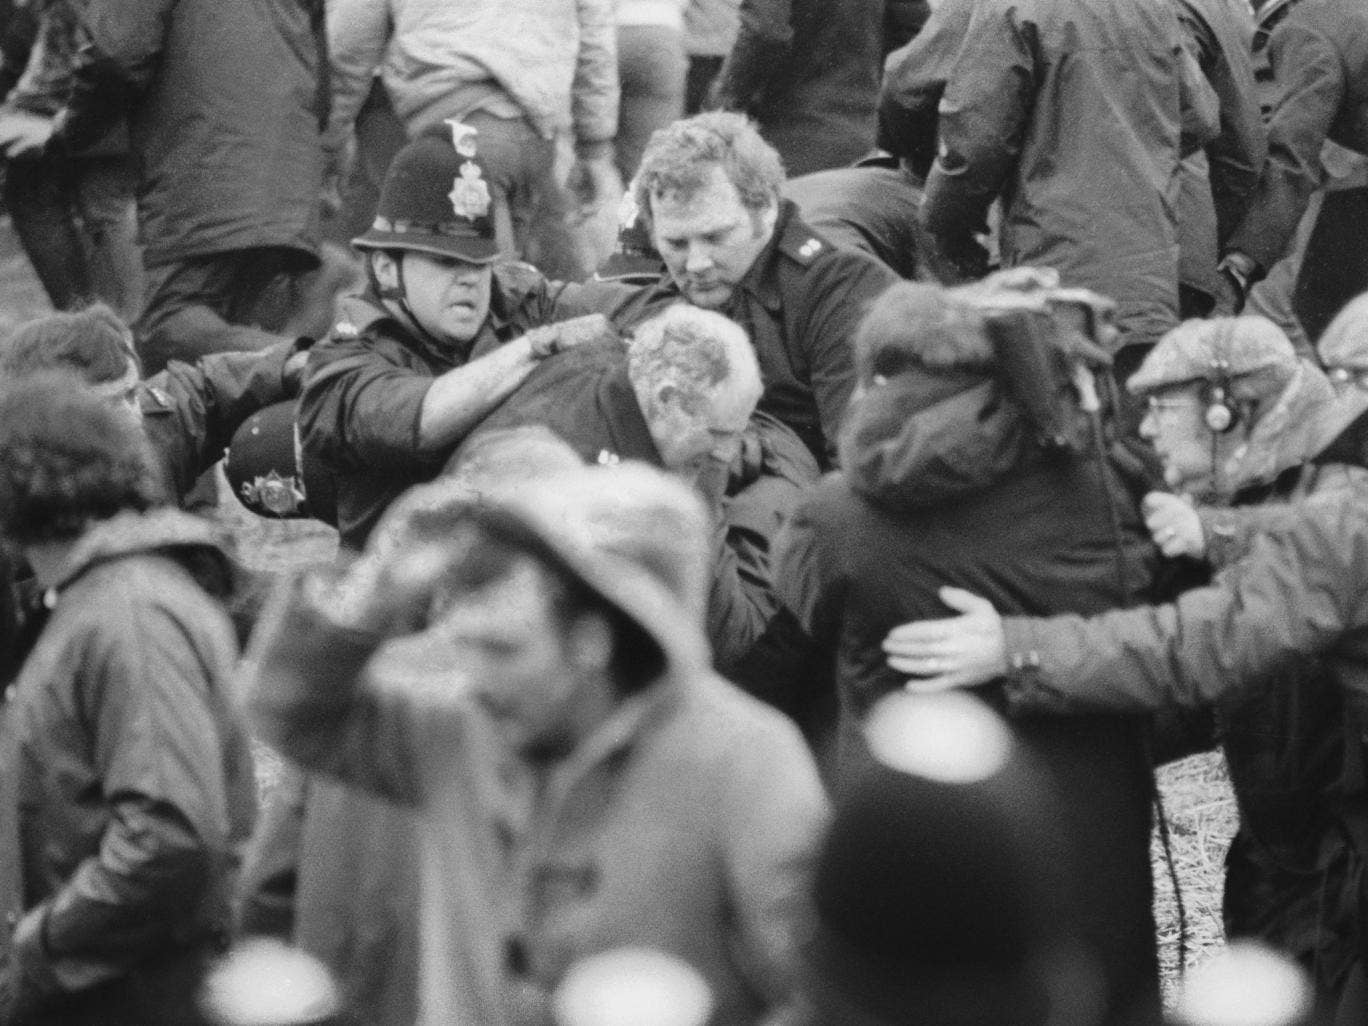 A camera crew fims a scuffle between police and miners at a demonstration at Orgreave Colliery, South Yorkshire, during the miner's strike, 2nd June 1984 - All police forces in England and Wales have been asked to search their files over claims that offic